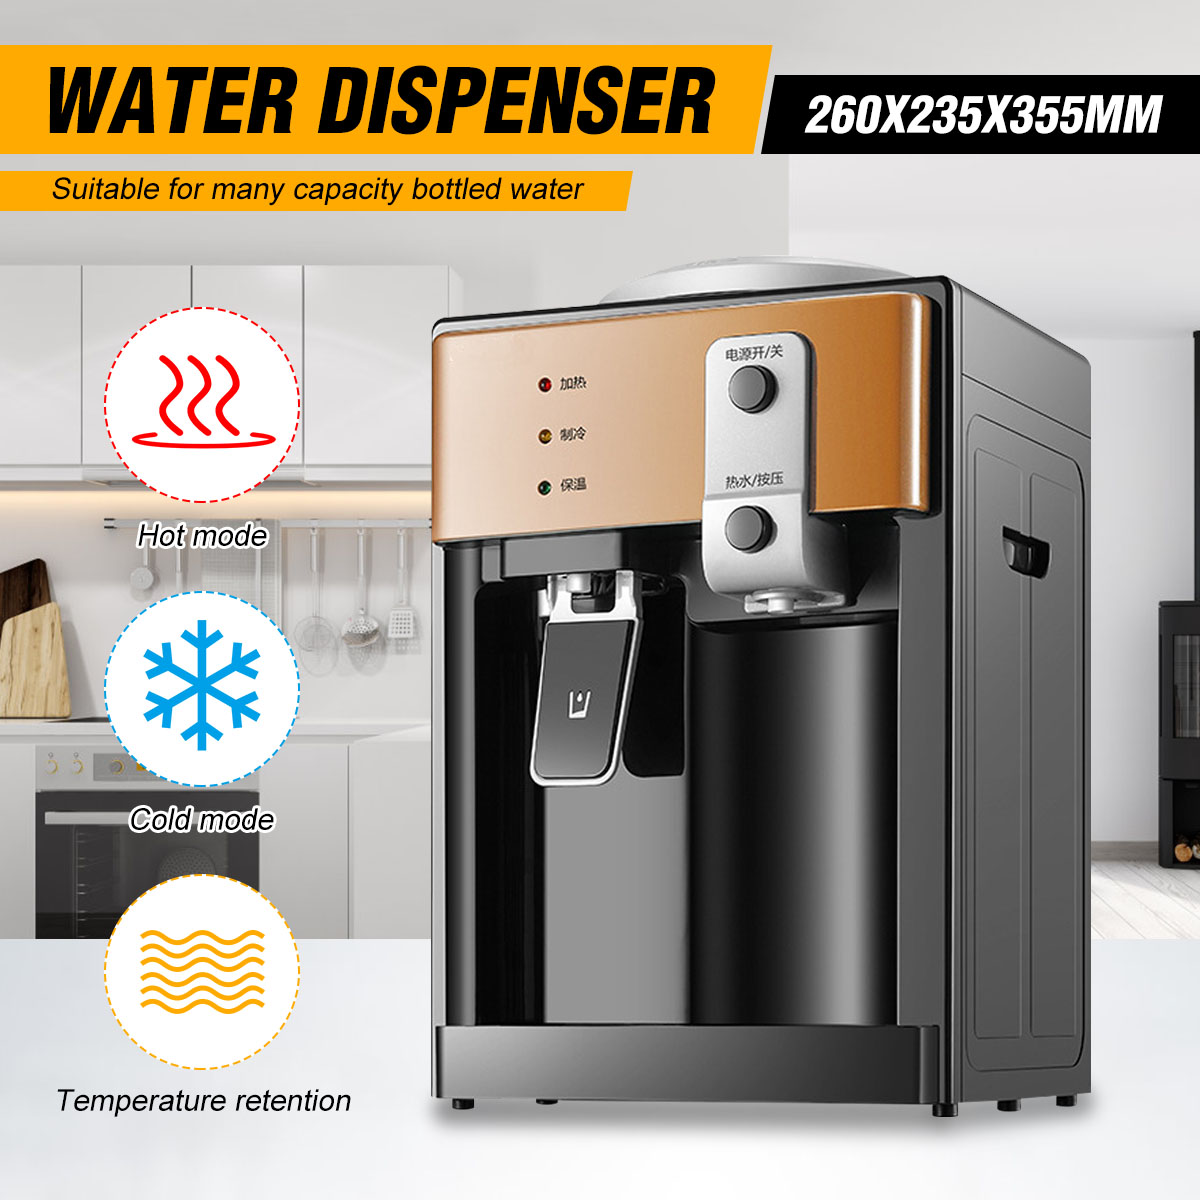 Electric Water Dispensers 220V 550W Desktop Cold Hot Ice Water Cooler Heater Drinking Fountain Home Office Coffee Tea Bar Helper